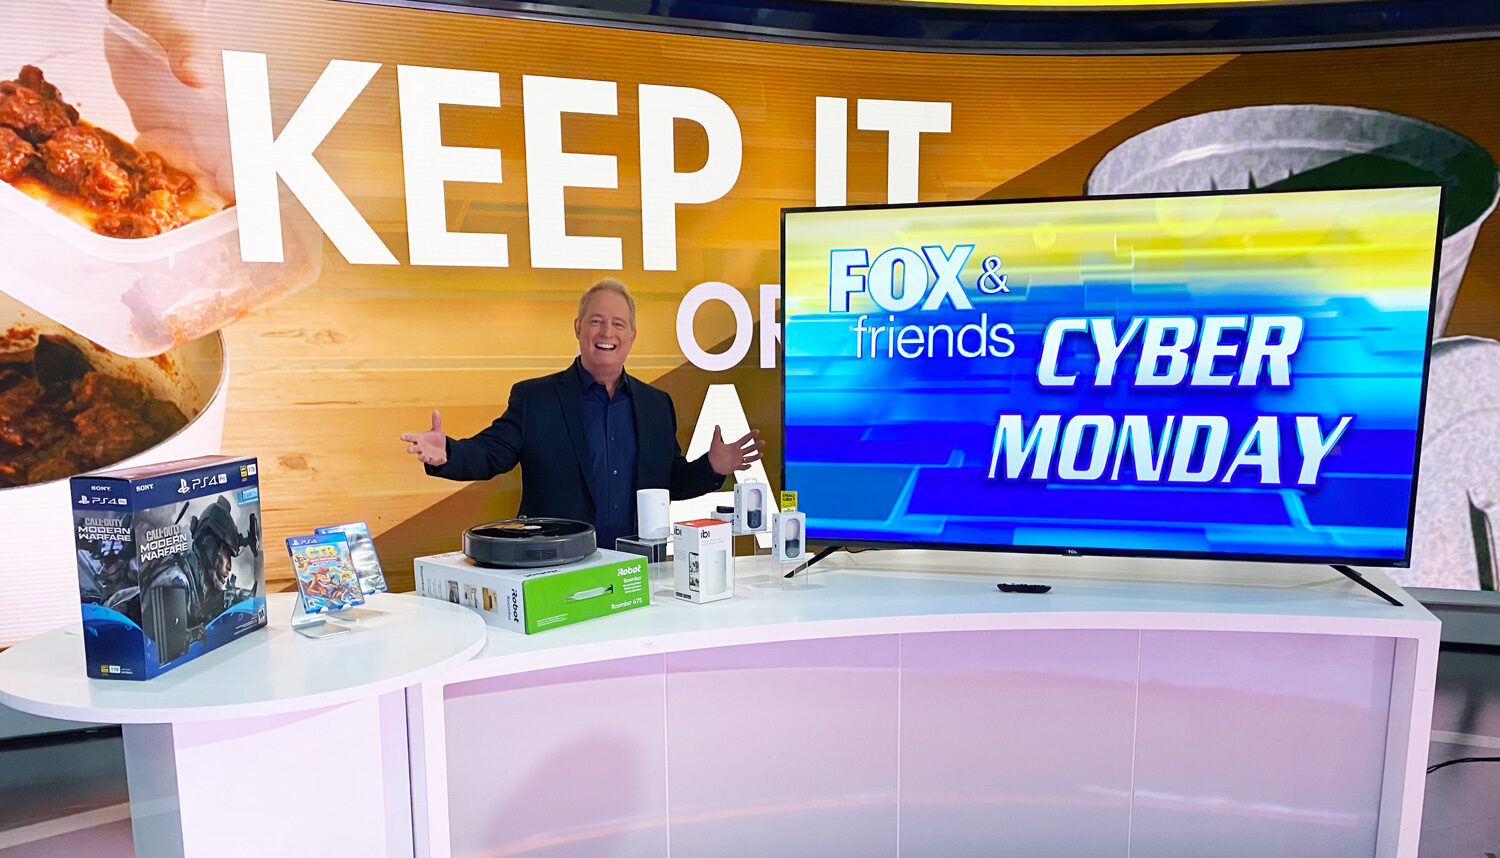 How to Get Best Deals on Cyber Monday